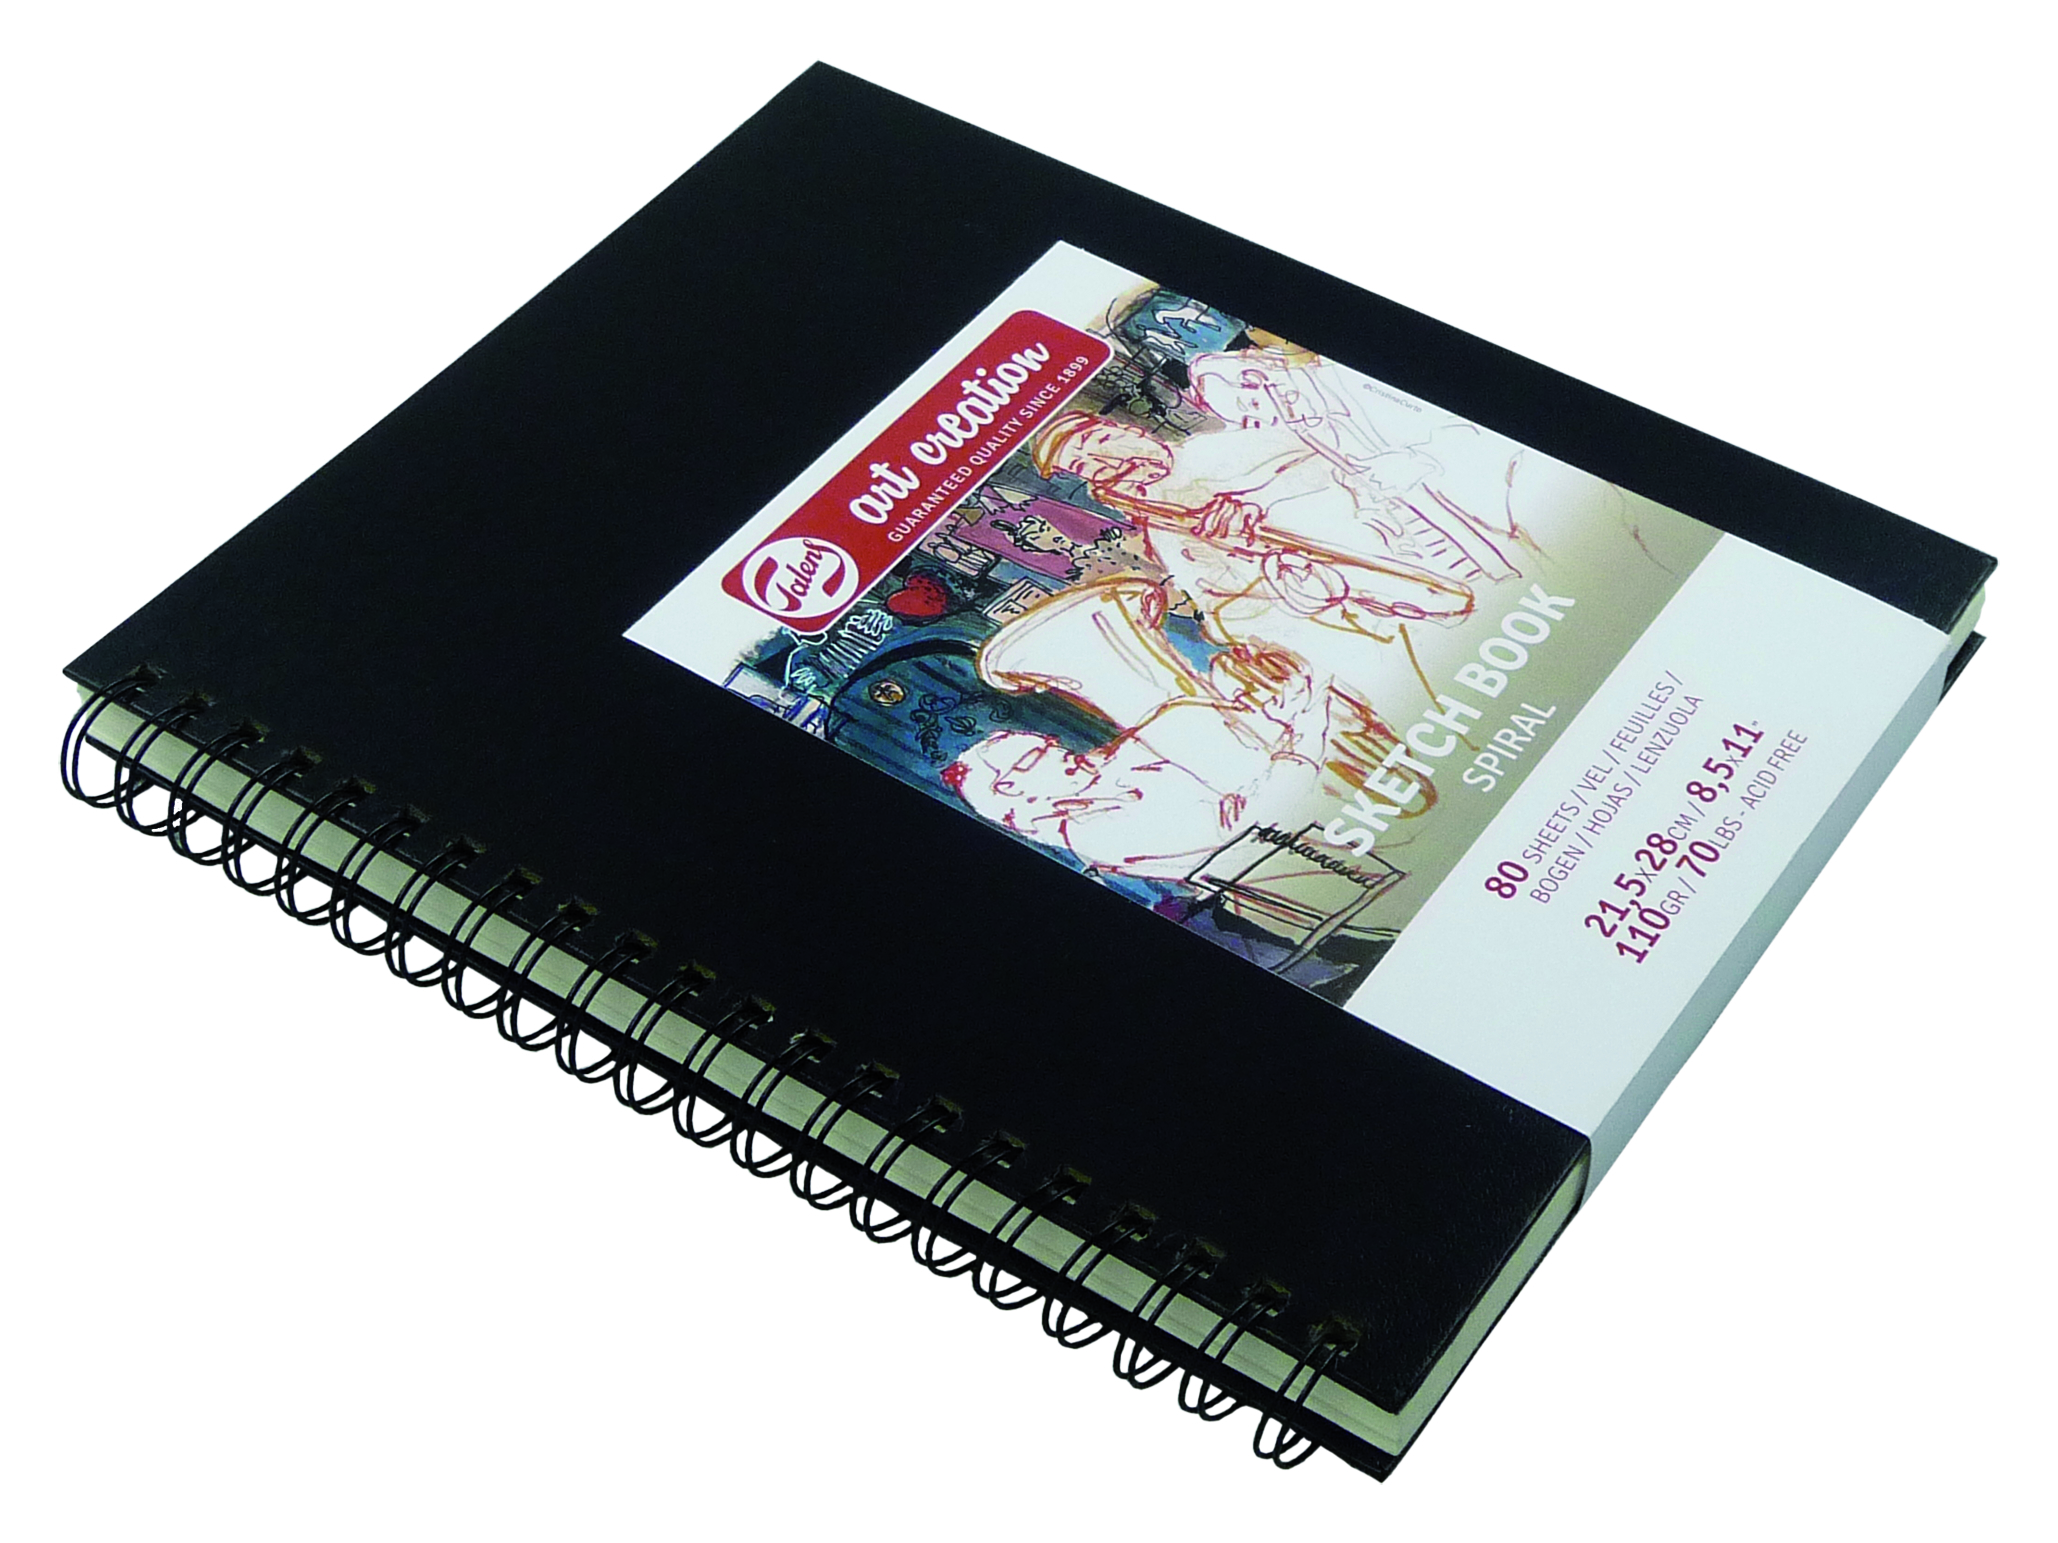 Talens Art Creation Sketchbook Spiral 21.5X28 cm, 80 Pages, 110Gr